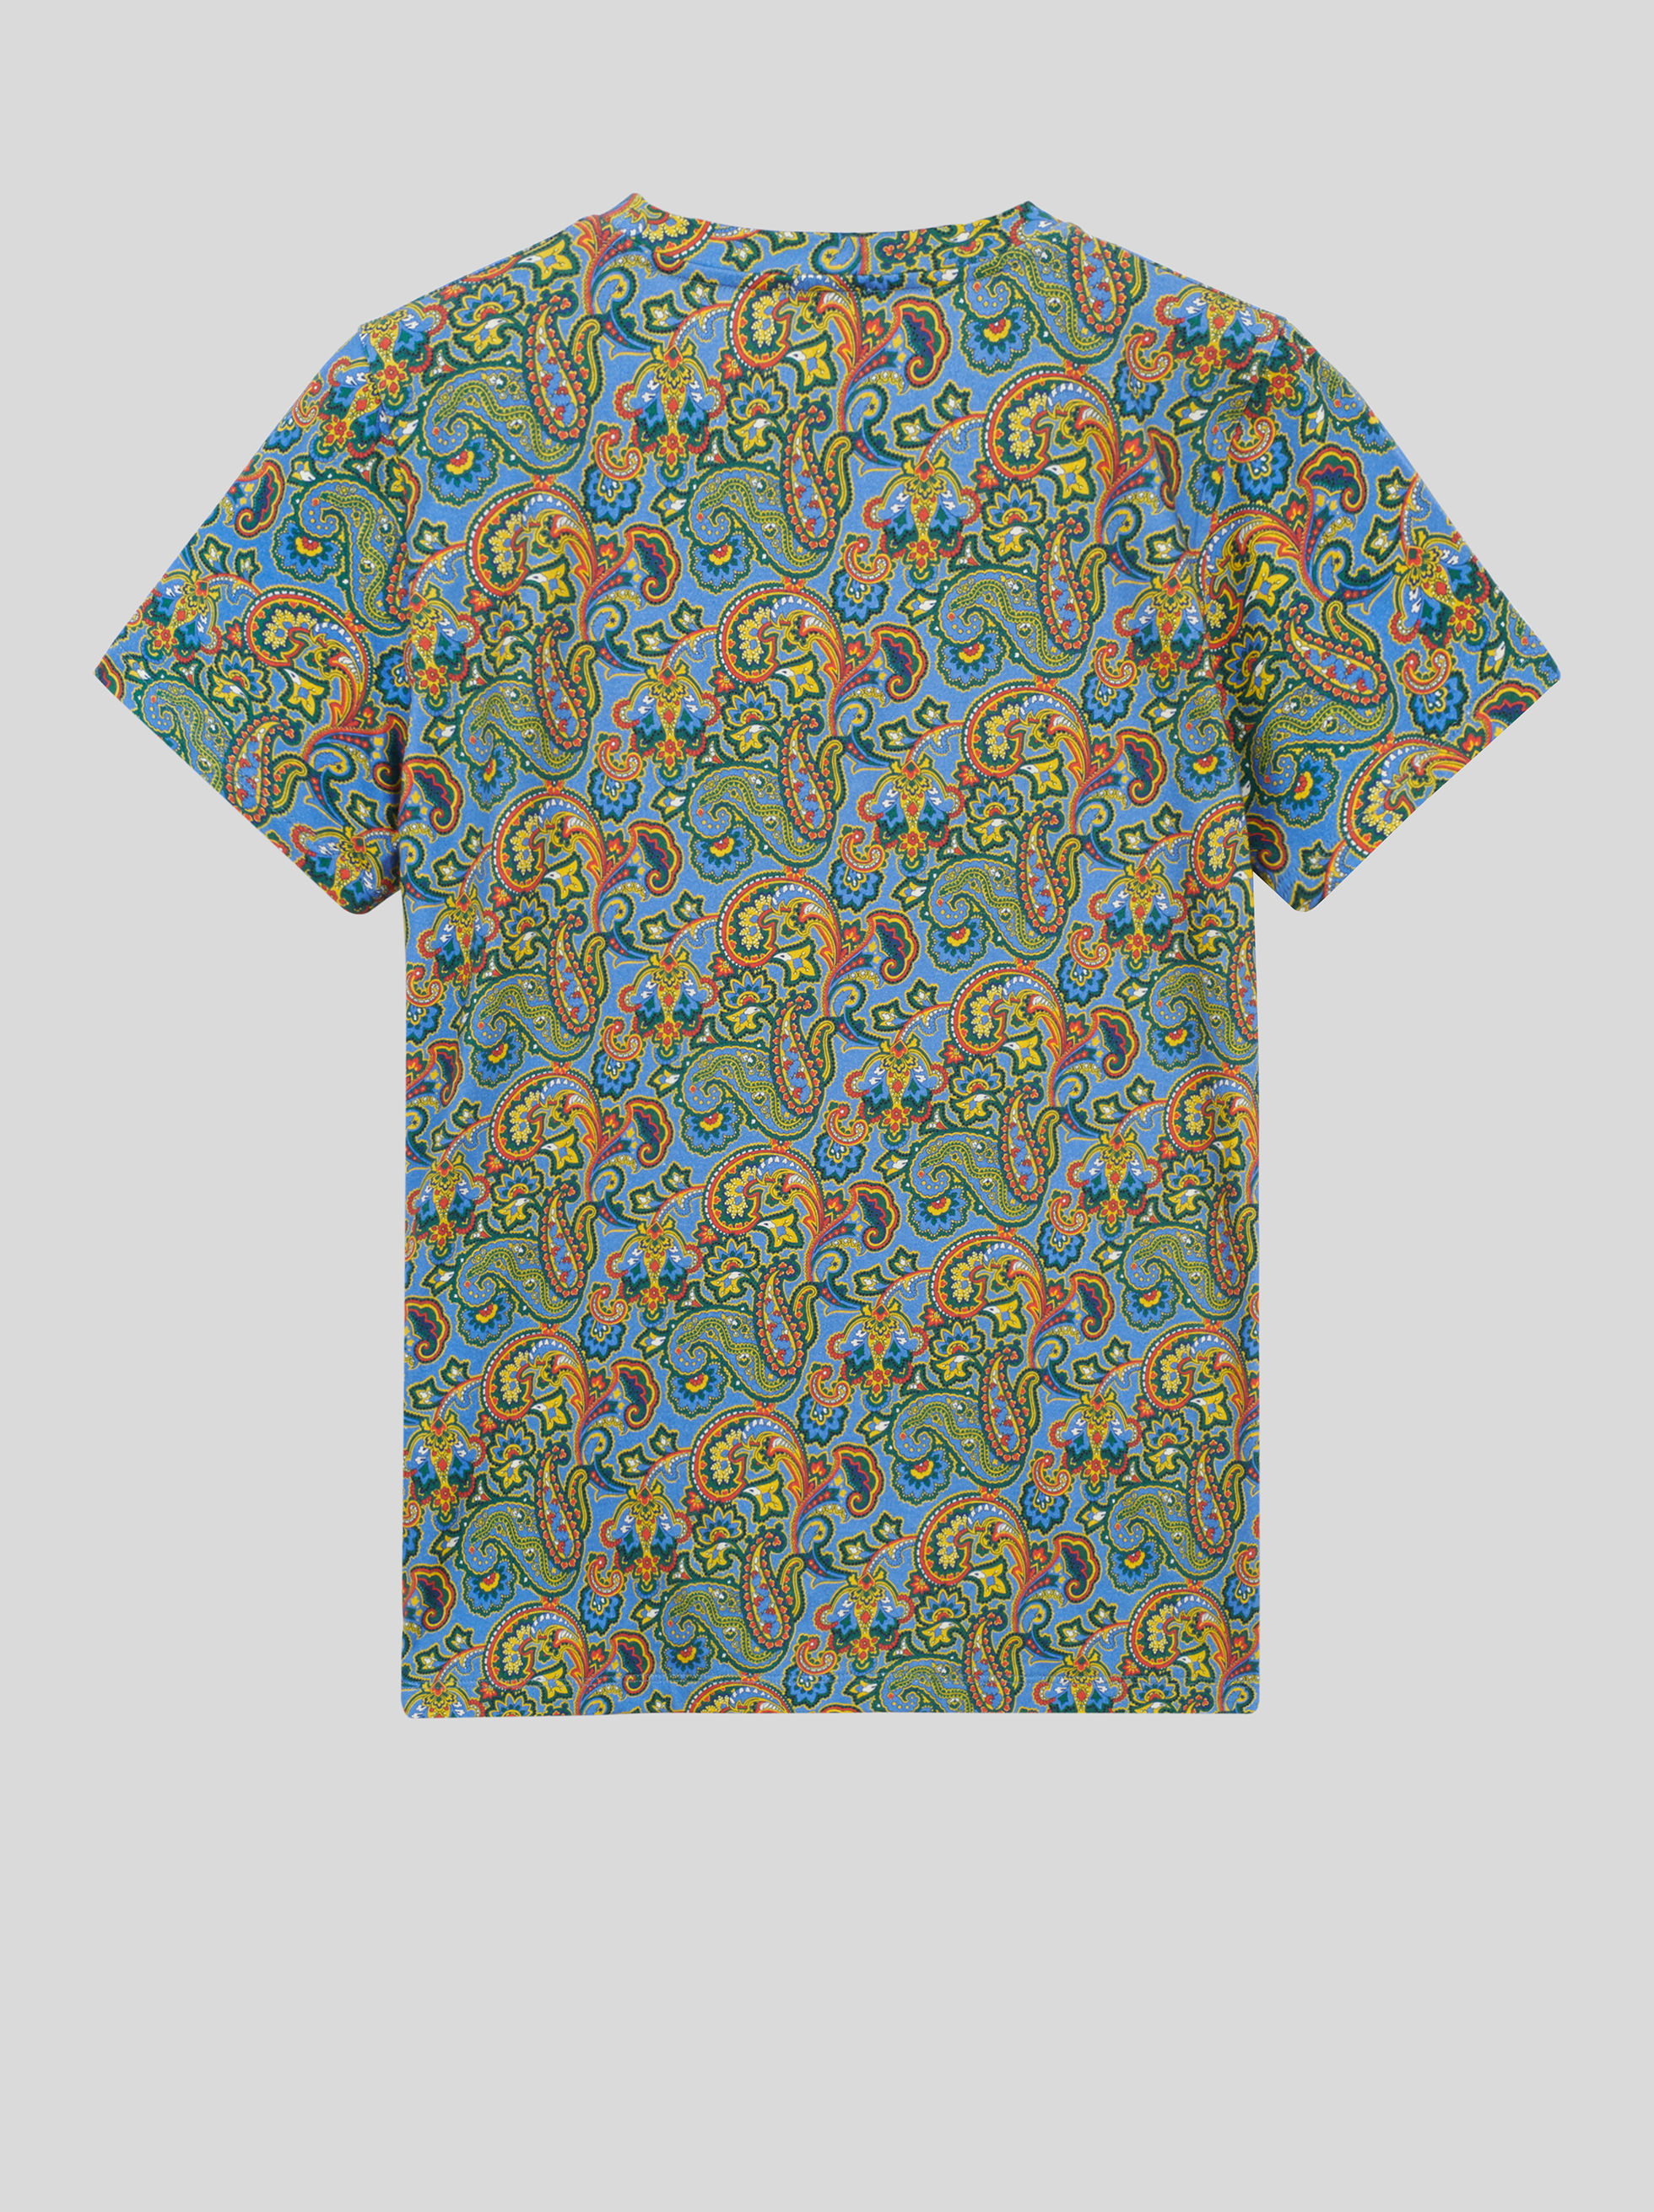 FLORAL PAISLEY COTTON T-SHIRT